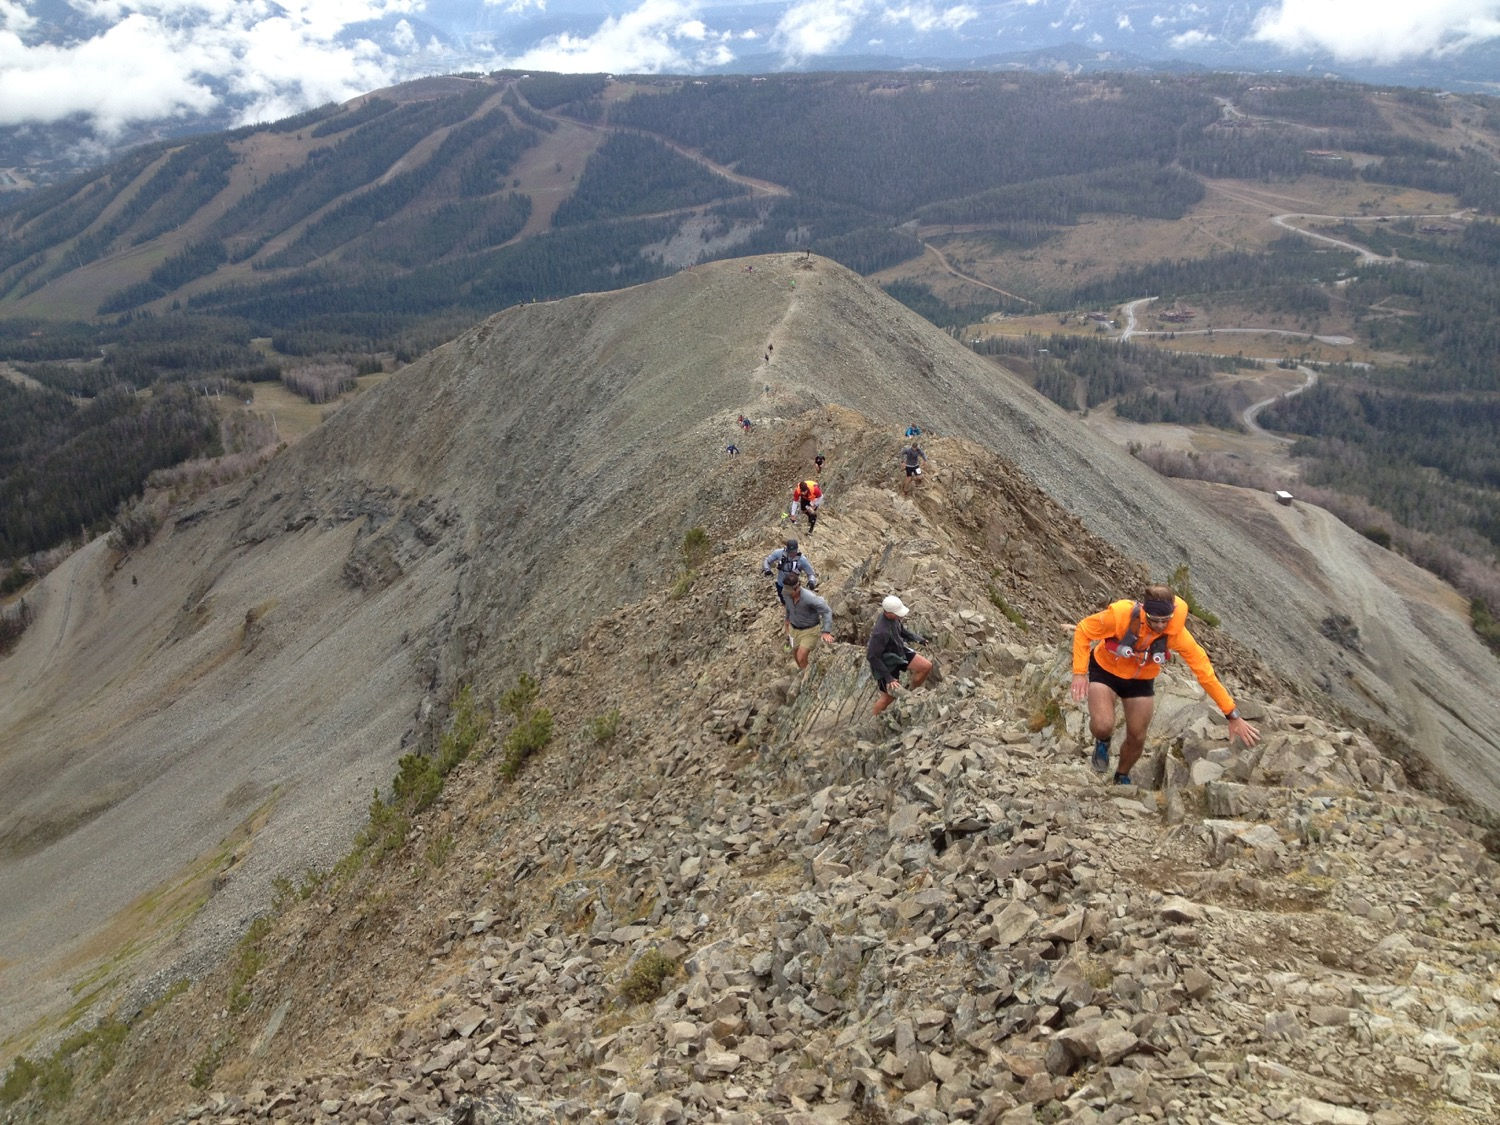 Racers in The Rut 50k run up Alto Ridge at Big Sky Resort. (Photo by Emily Stifler Wolfe)